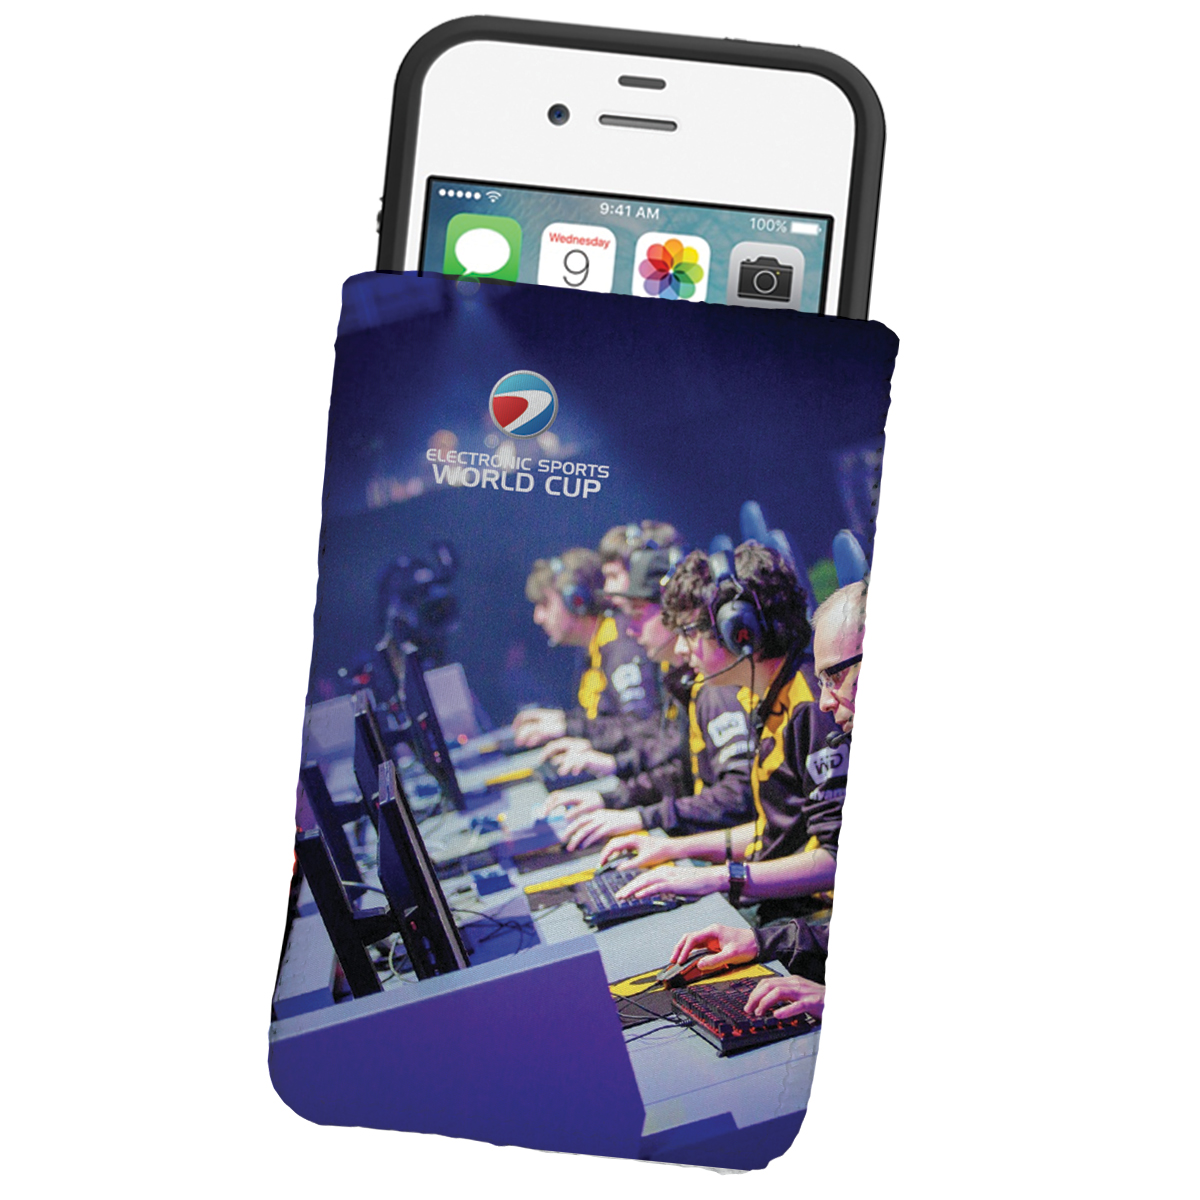 # CM MICROFIBER-PCH Dye Sublimated Microfiber Phone Wallet Pouch or Sleeve